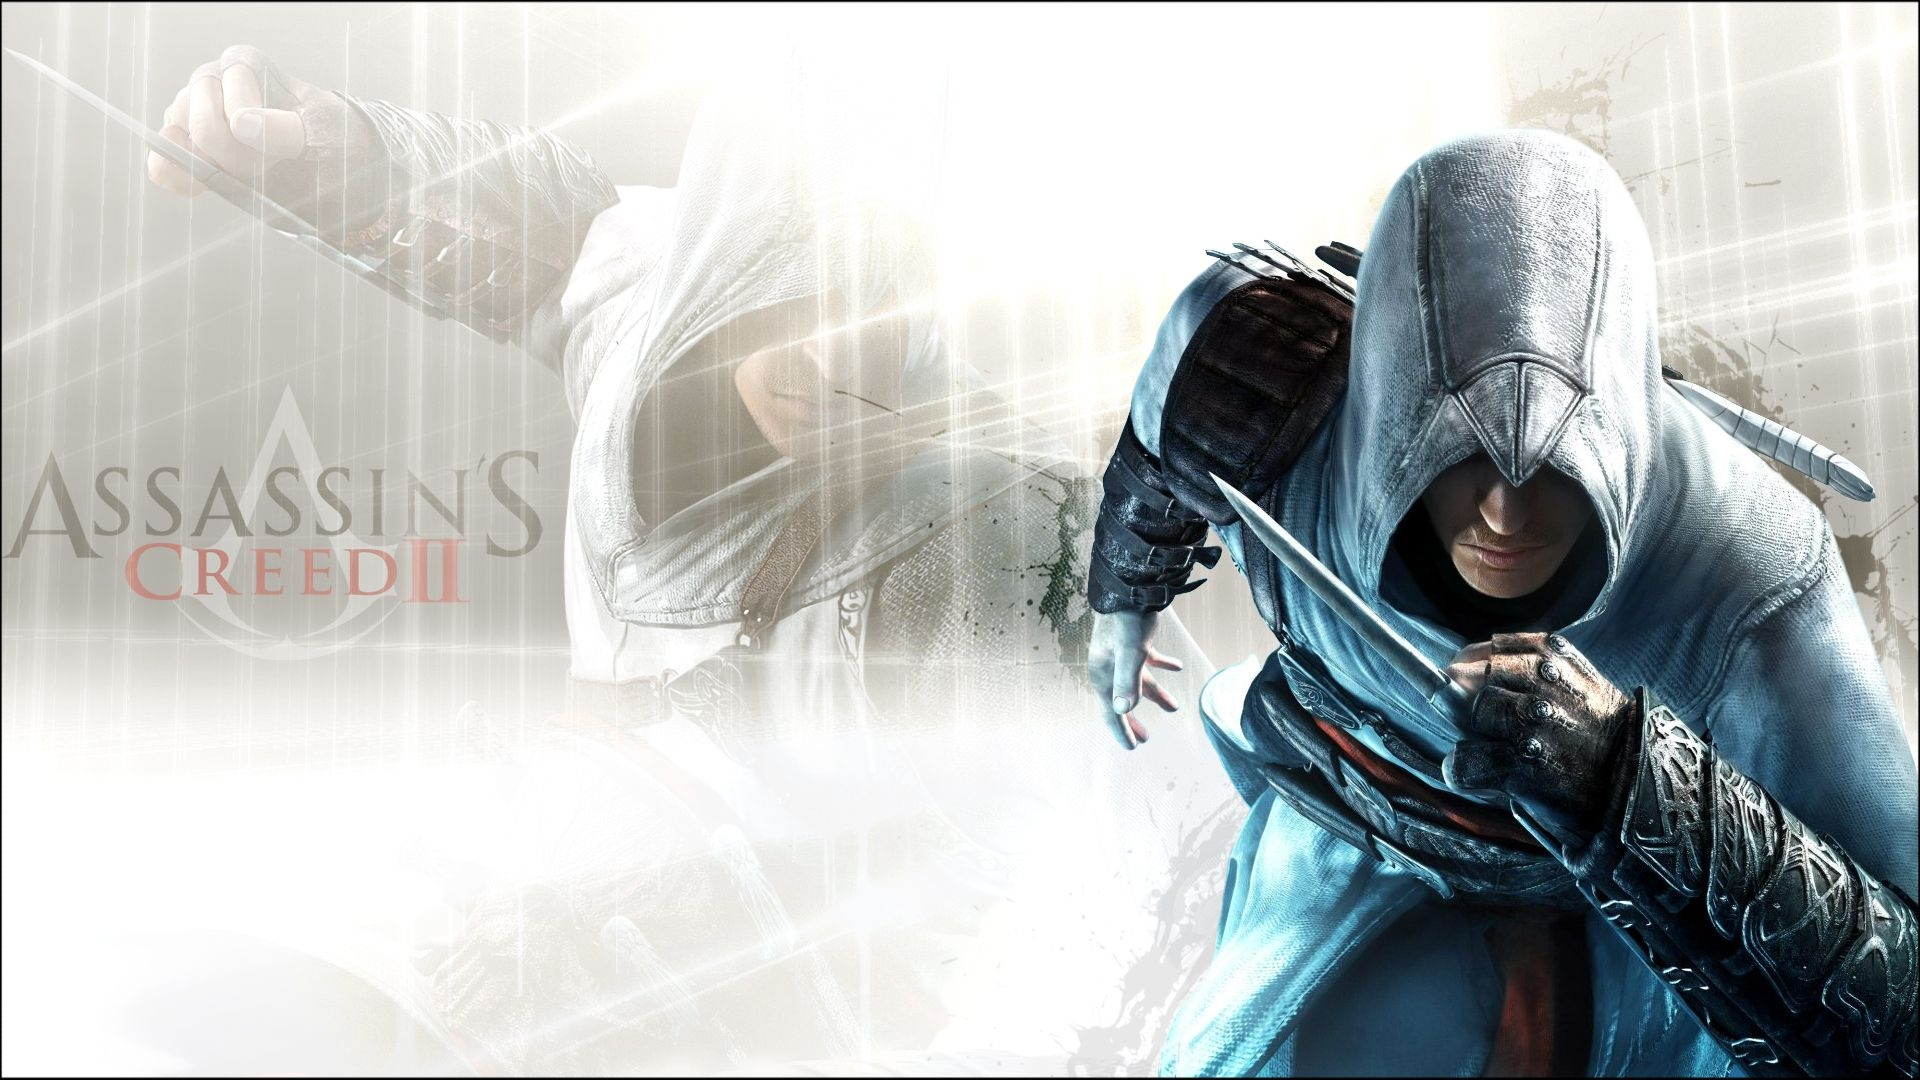 Download Wallpaper 1920x1080 Assassins Creed 2 Background